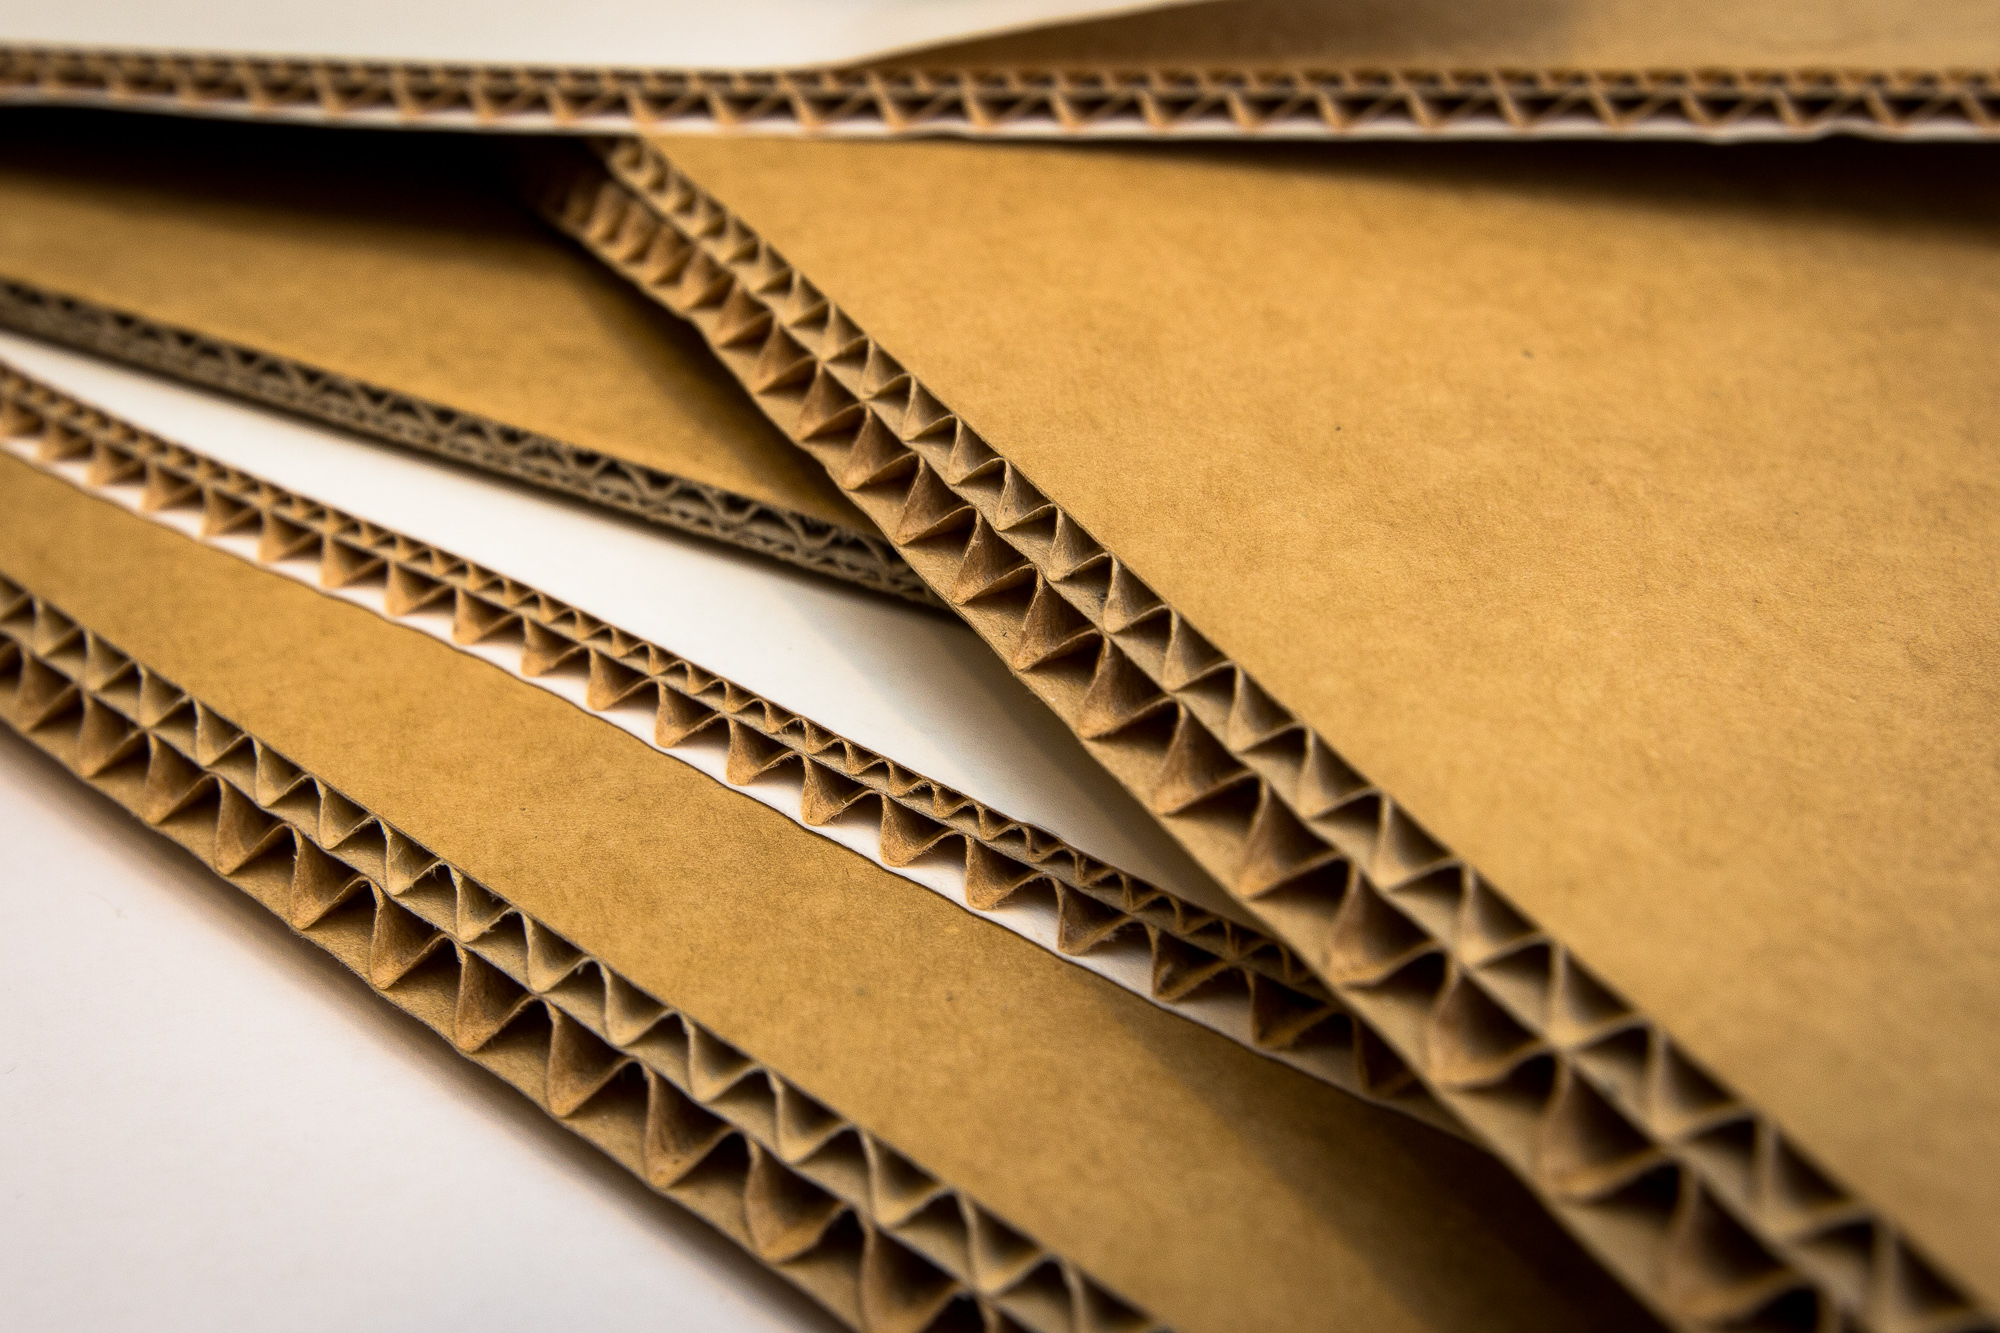 Customer story: Increased speed, better bonding and lower cost in the corrugated plant